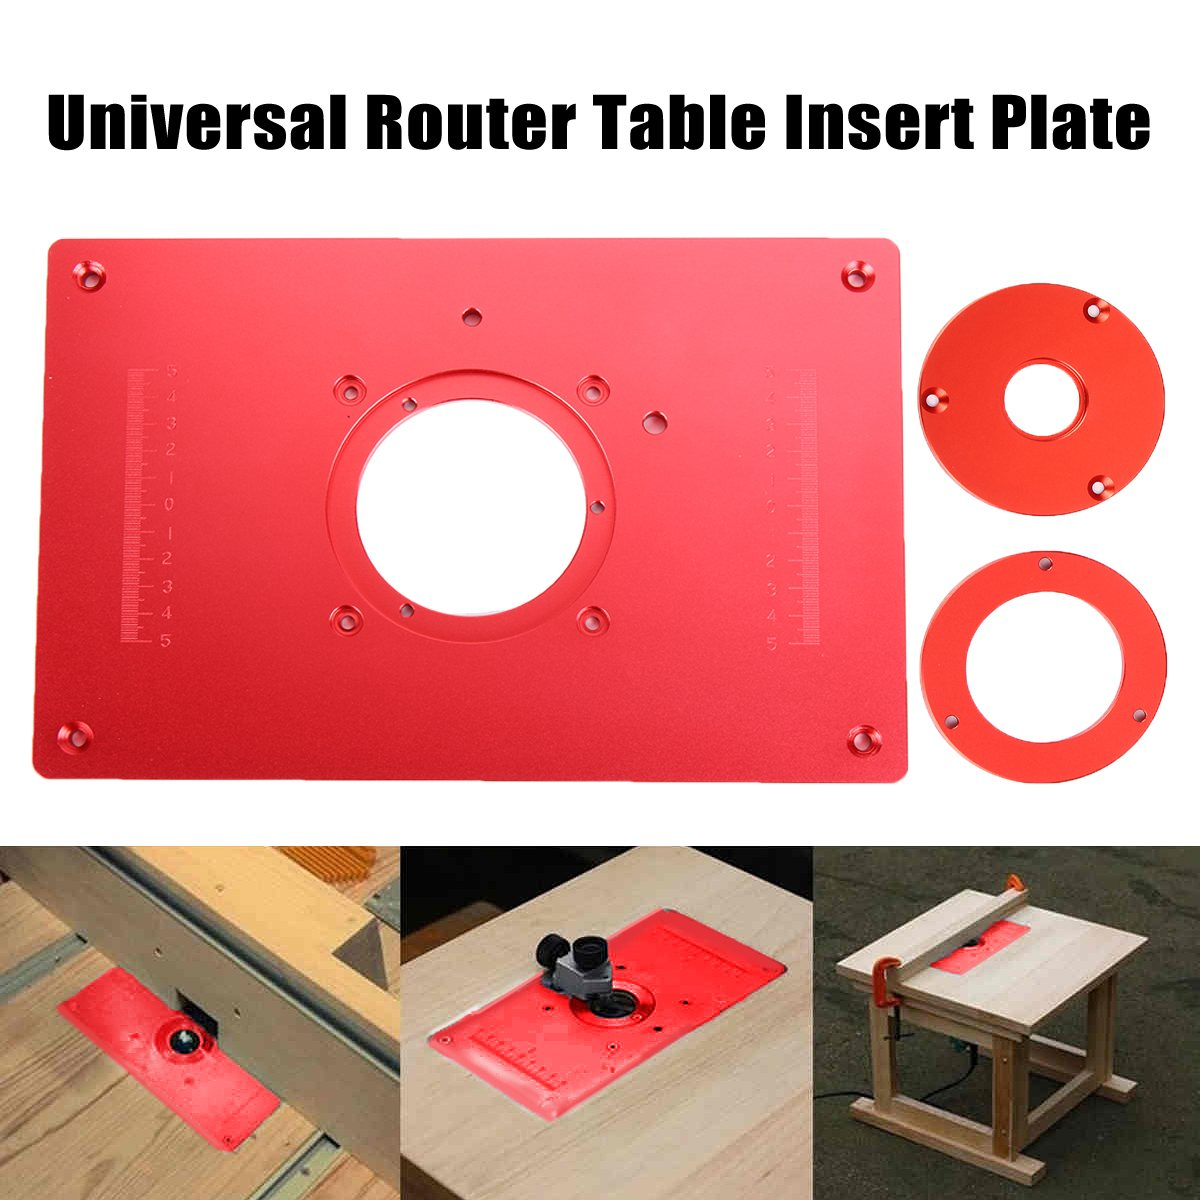 Universal Router Table Insert Plate Aluminium Alloy For DIY Woodworking Engraving Machine 200x300x10mm High Quality 300 235mm aluminum router table insert plate diy woodworking benches for popular router trimmers models engrving machine